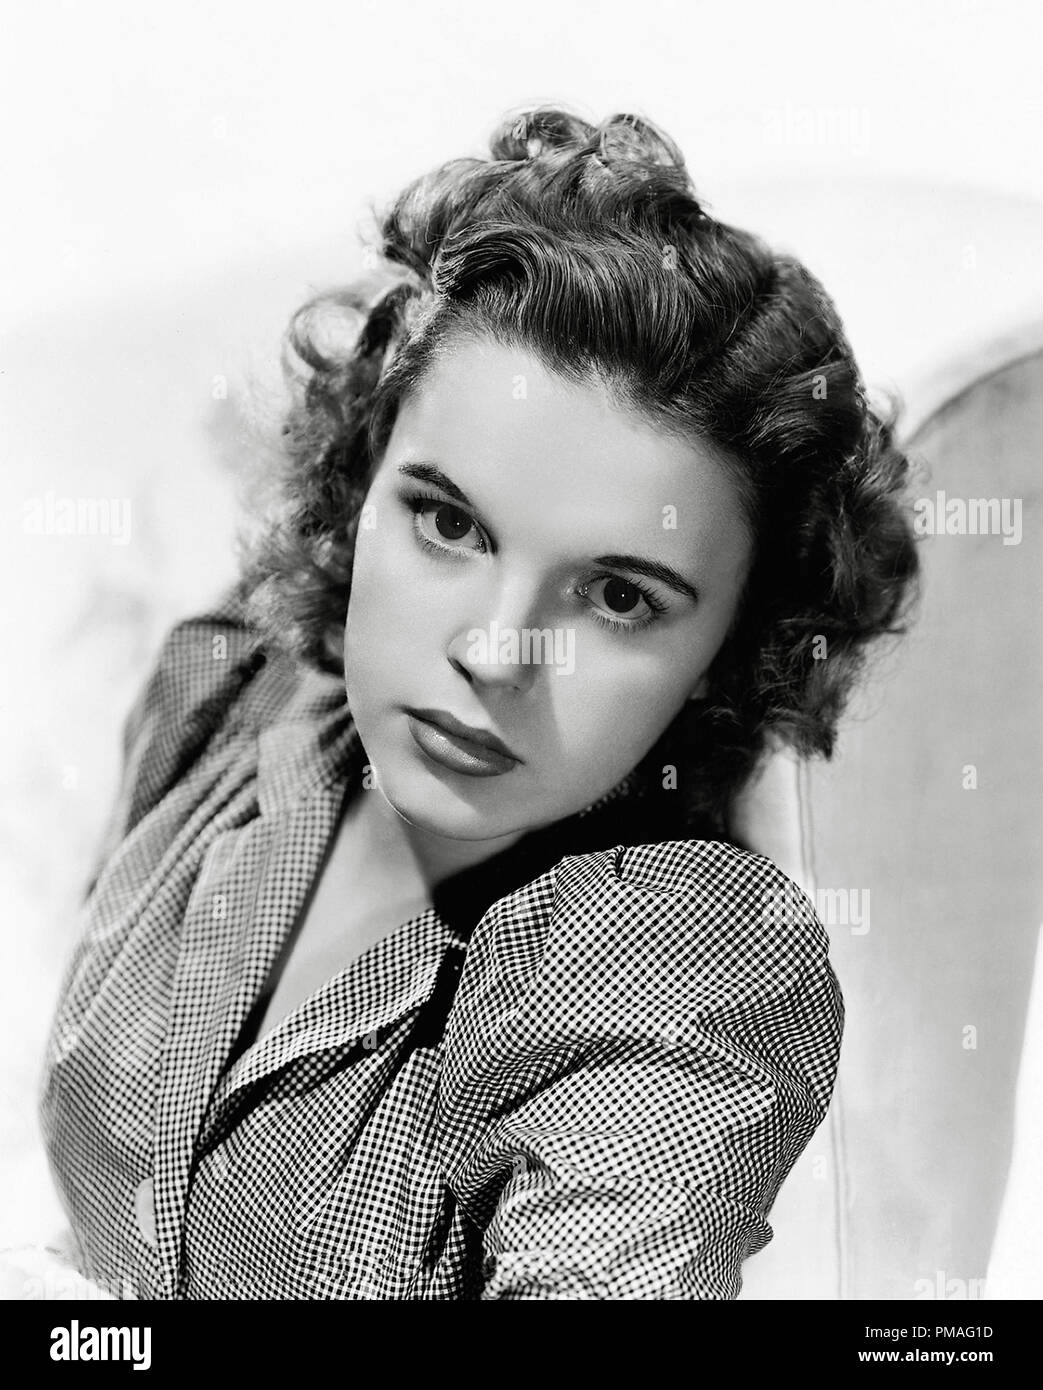 Judy Garland Circa 1940 File Reference 32633 919tha Stock Photo Alamy